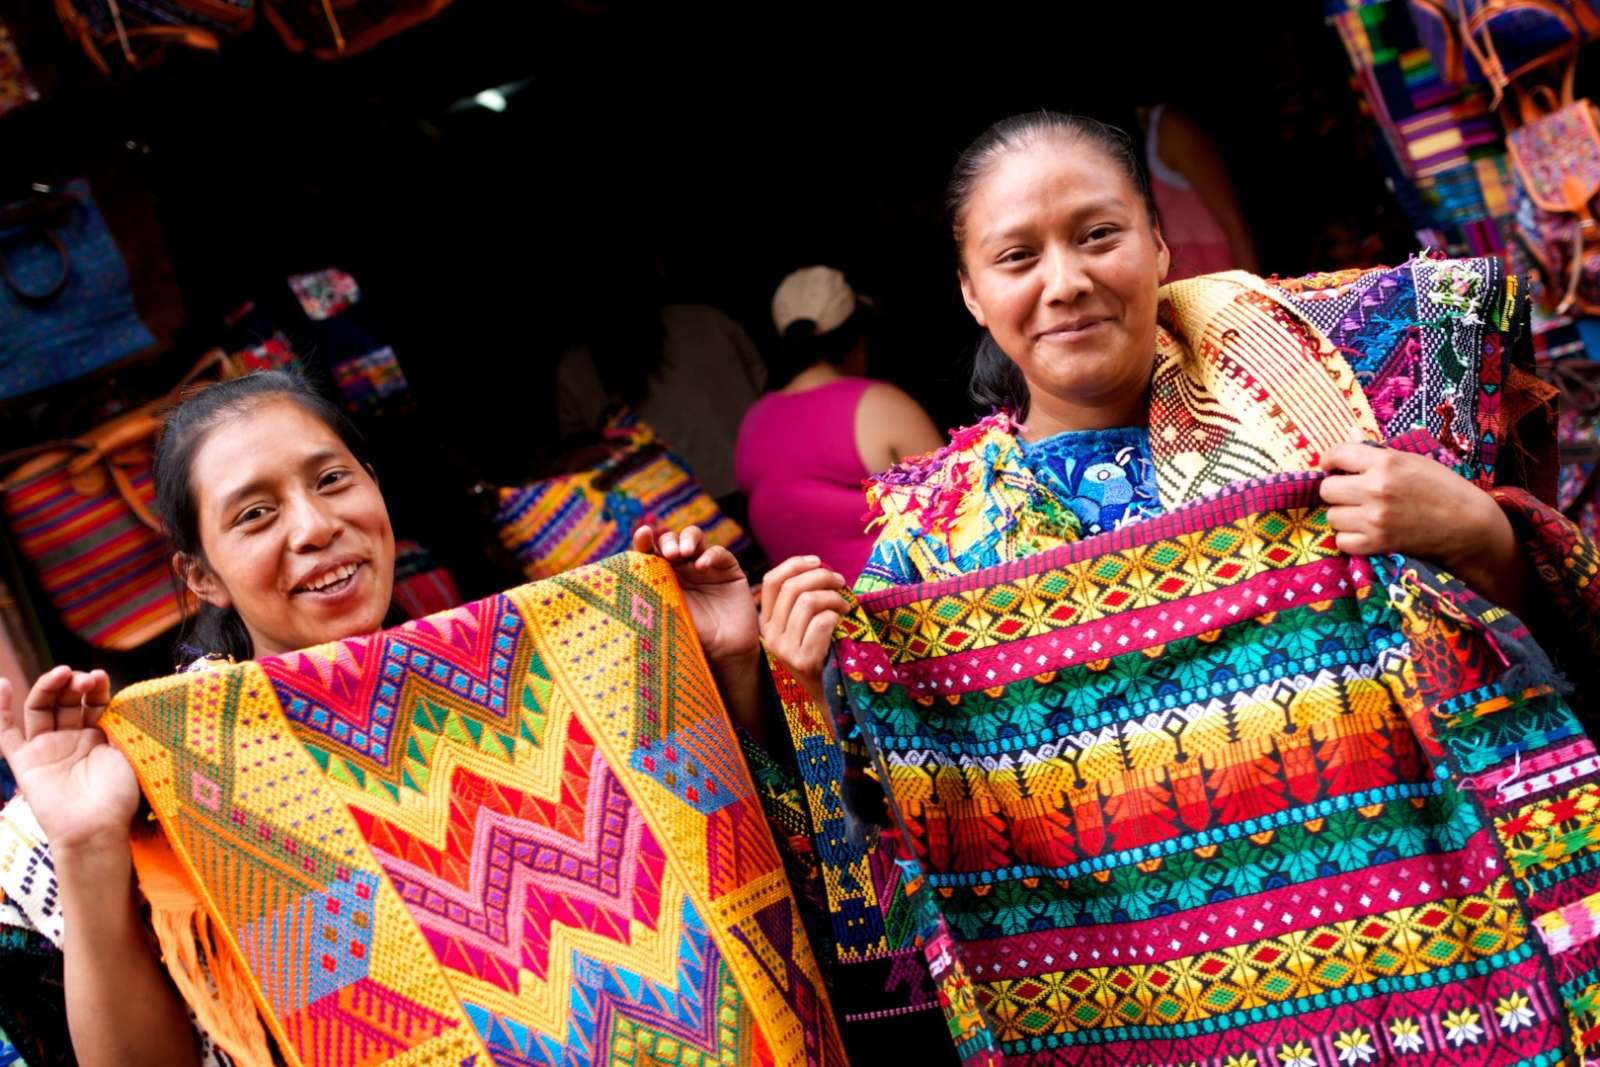 Two lady traders selling colourful throws at Chichicastenango, Guatemala